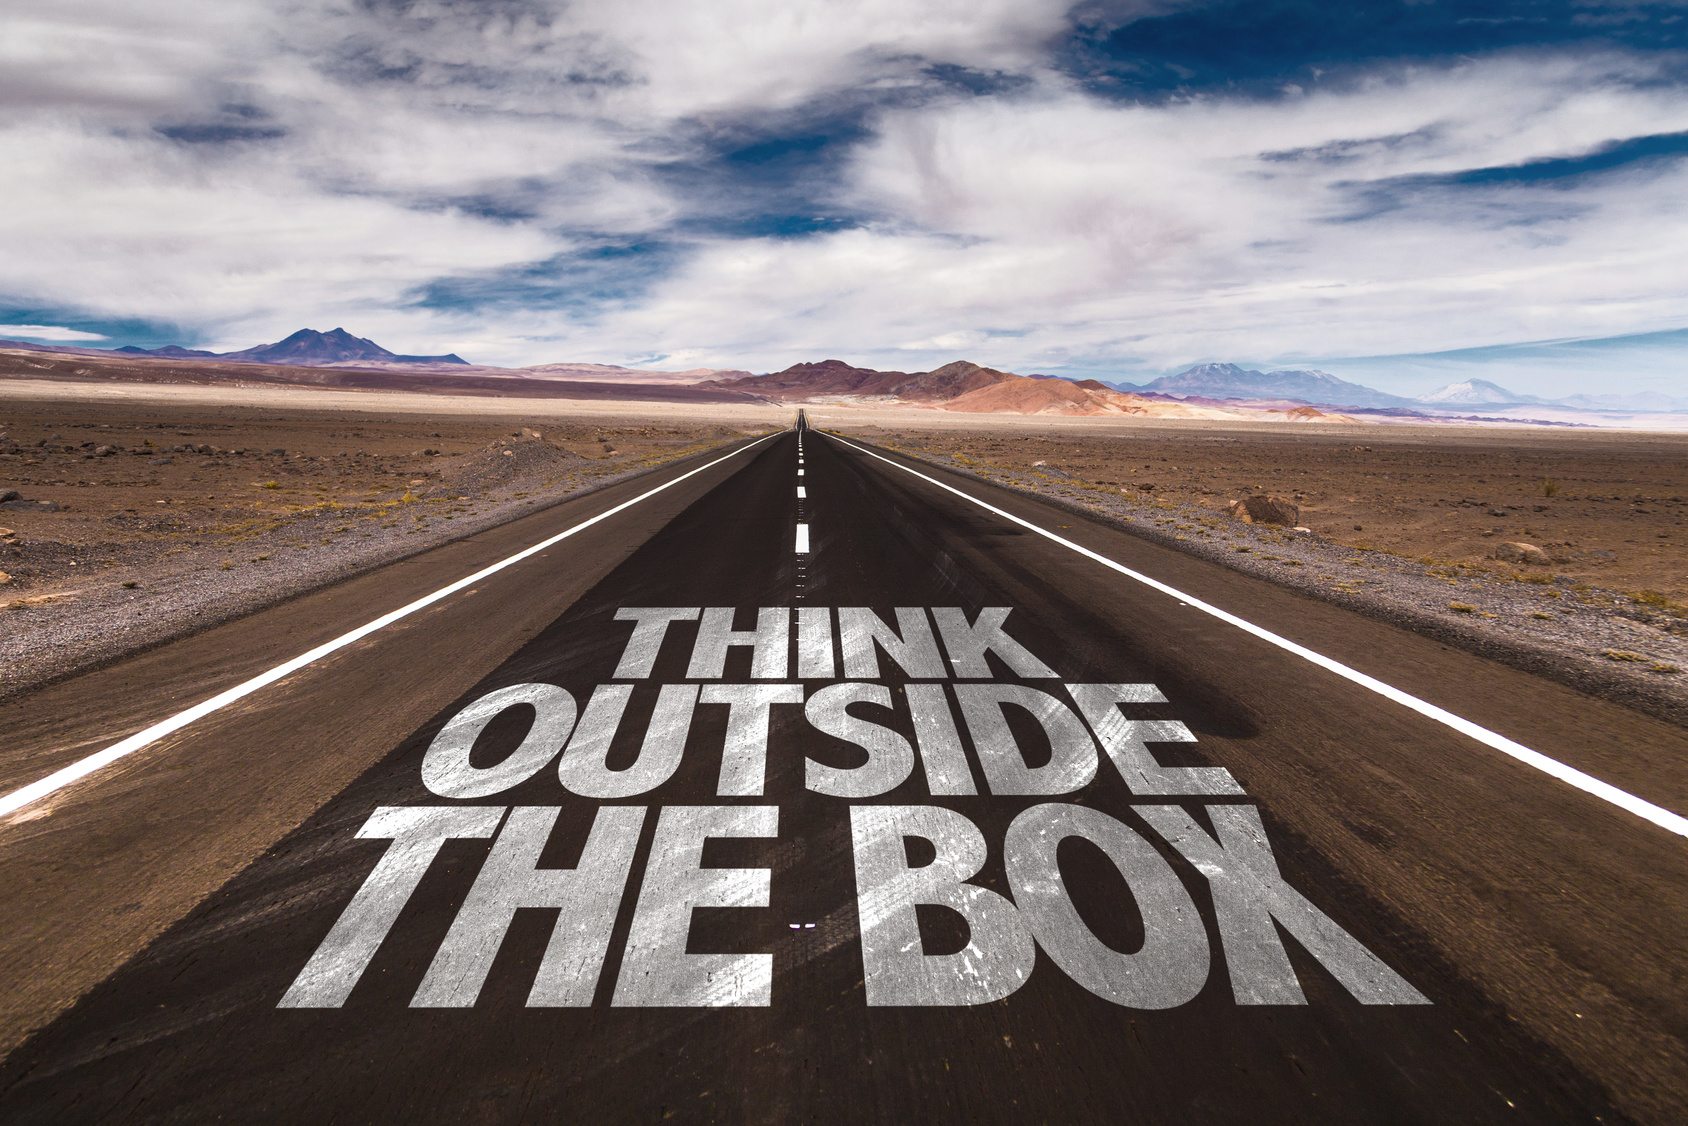 Think Outside the Box written on desert road | #89915110 | Urheber: gustavofrazao - Fotolia.de